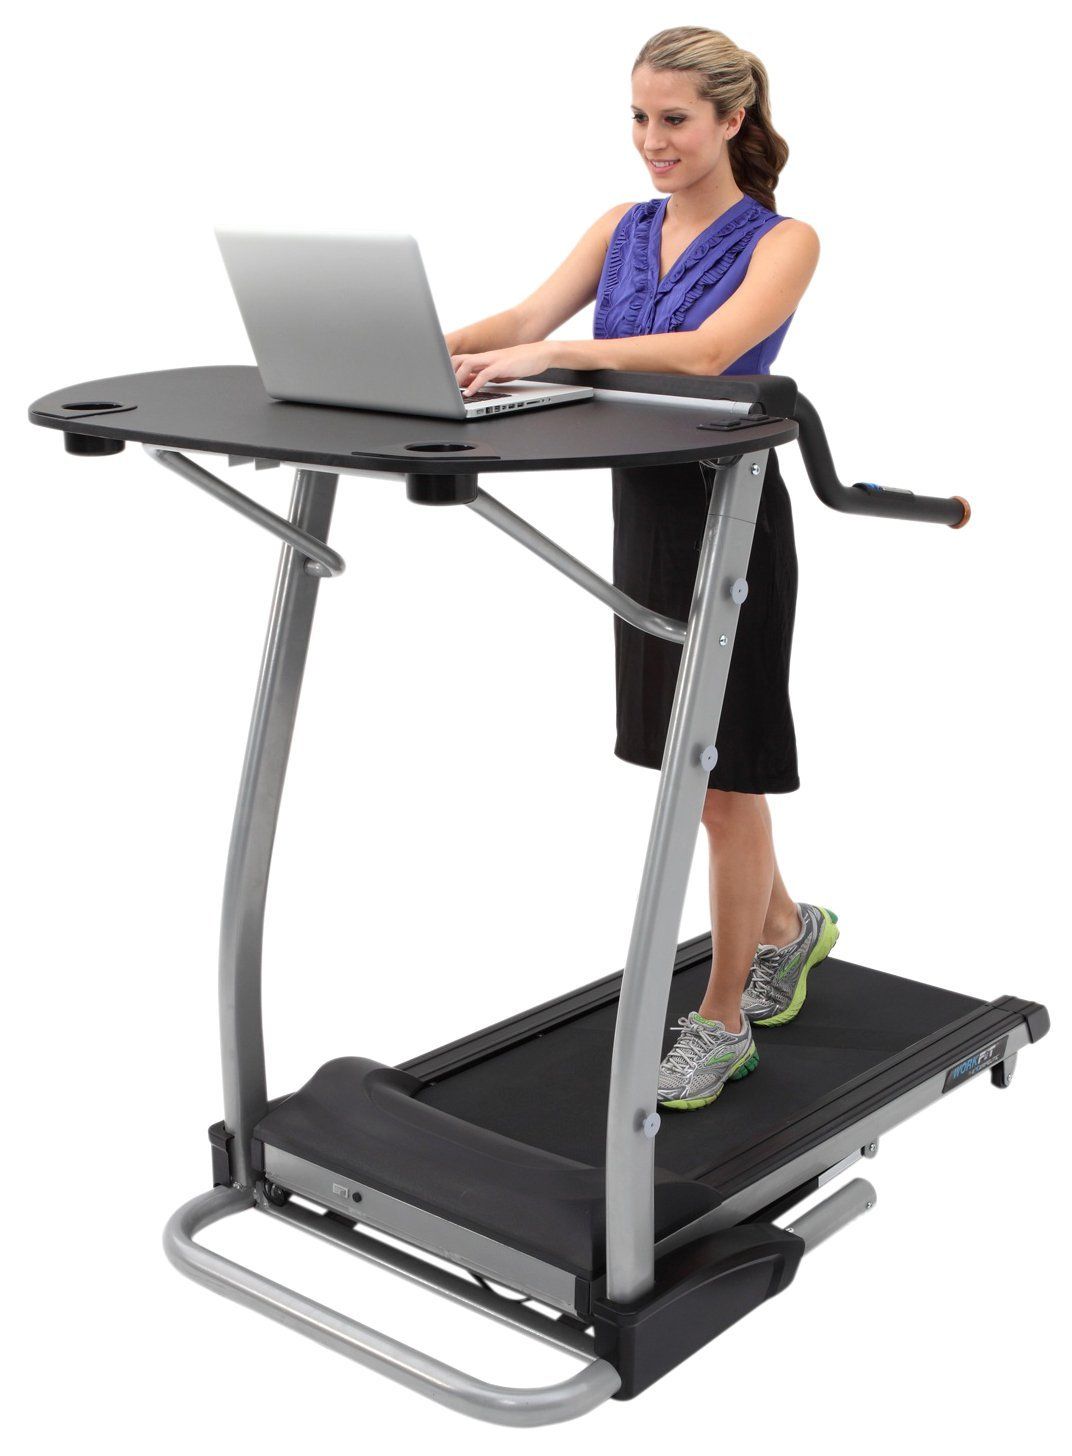 Exerpeutic Workfit 2000 Treadmill Desk